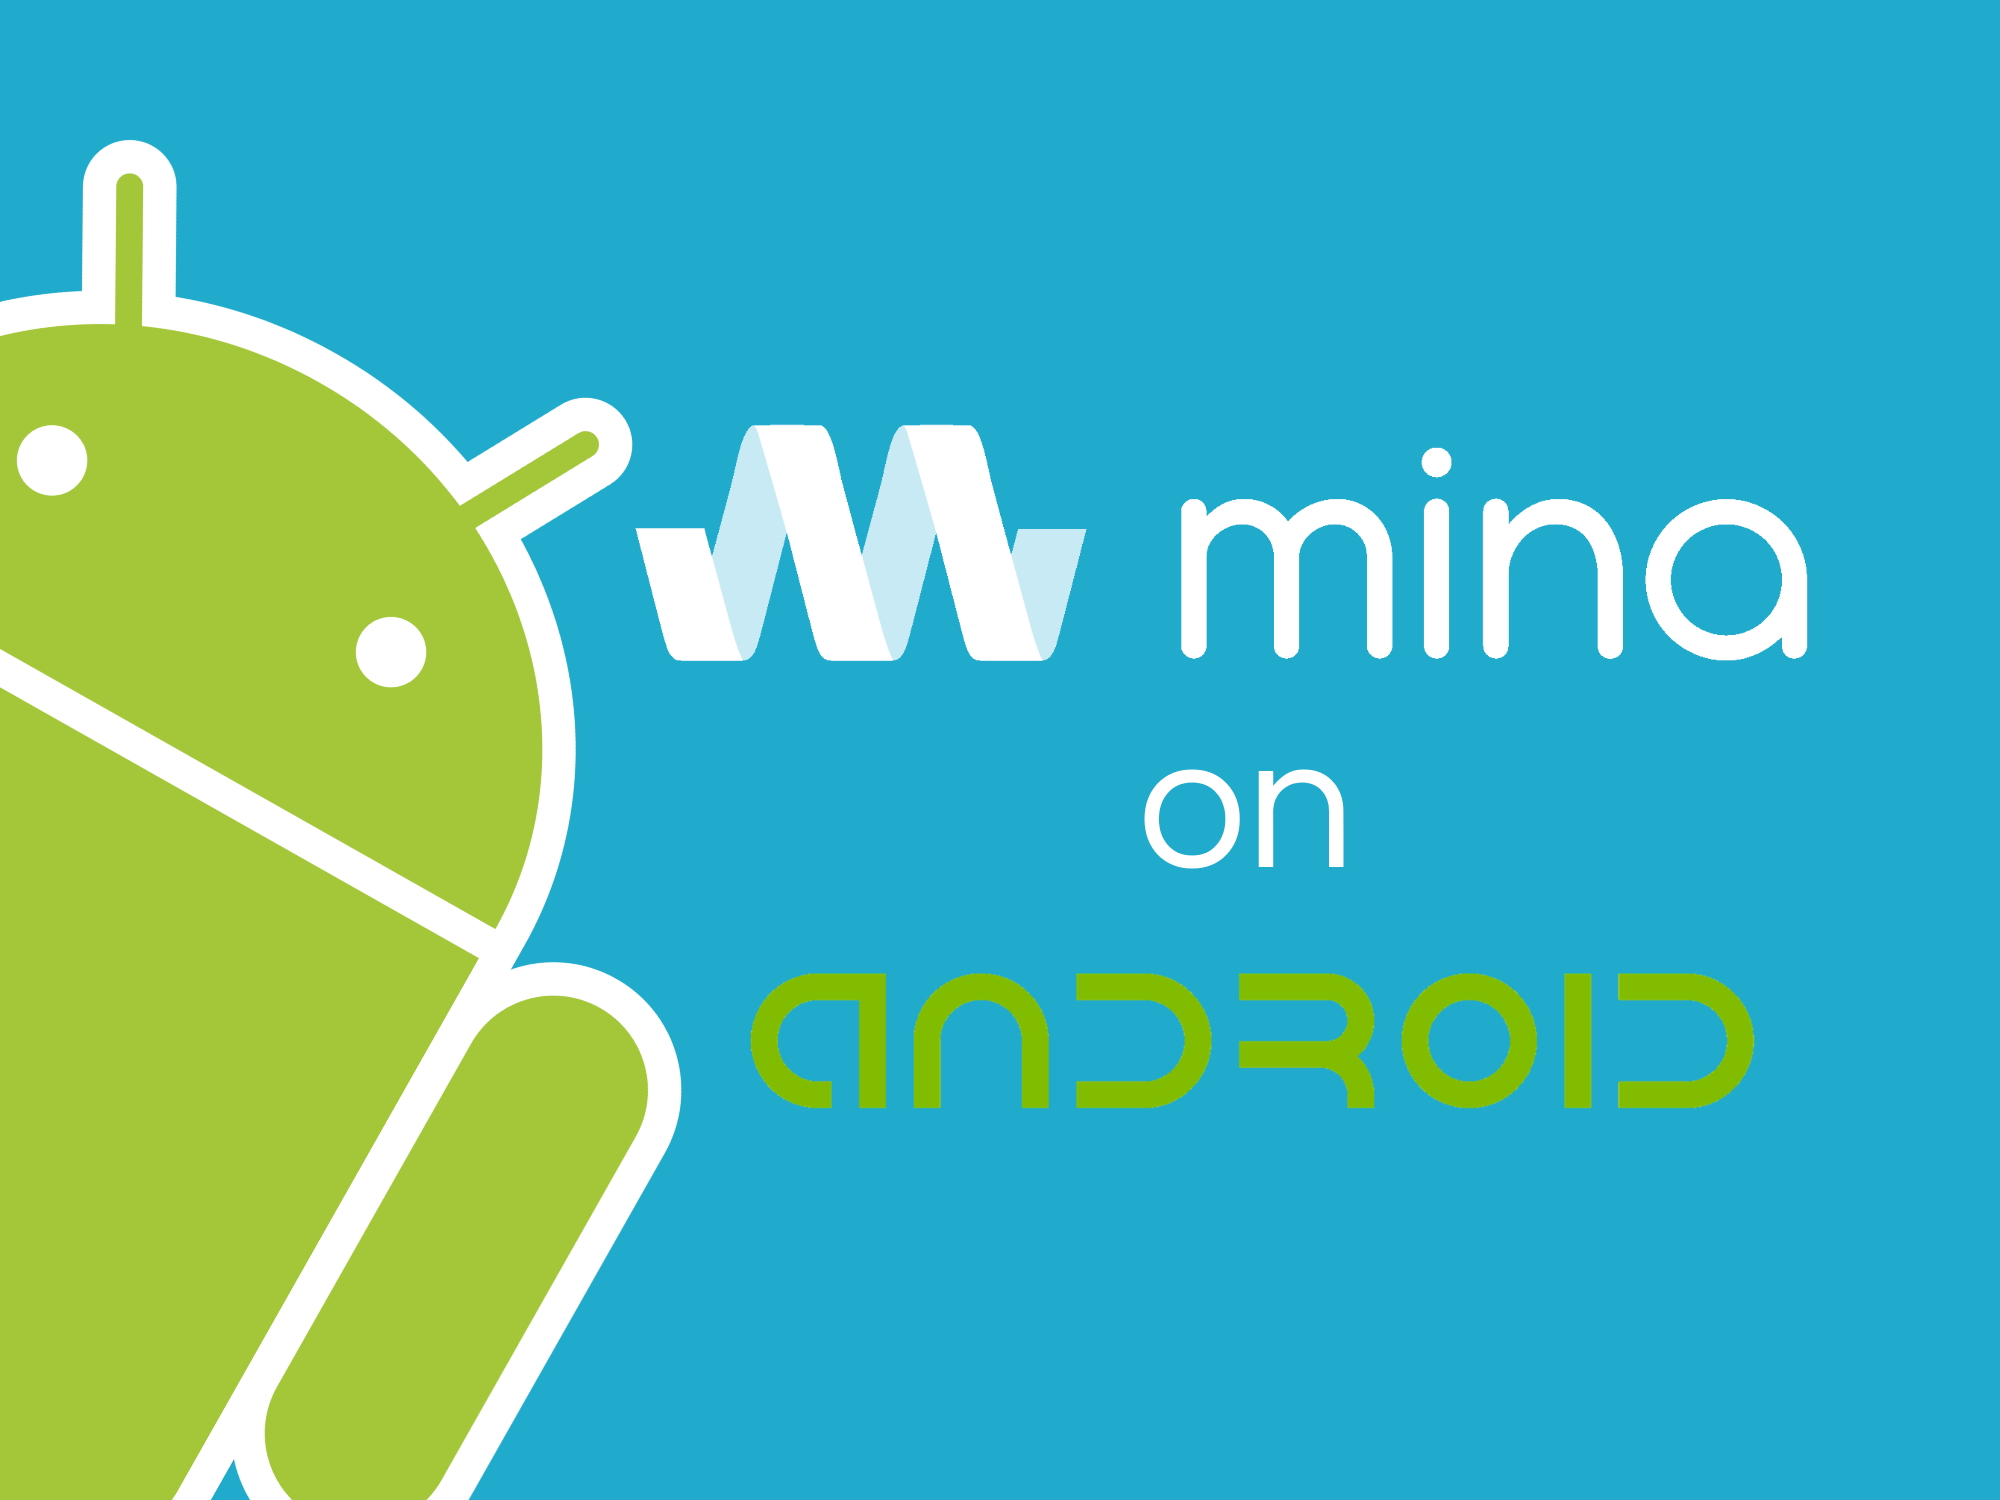 The mina app is now available on Android